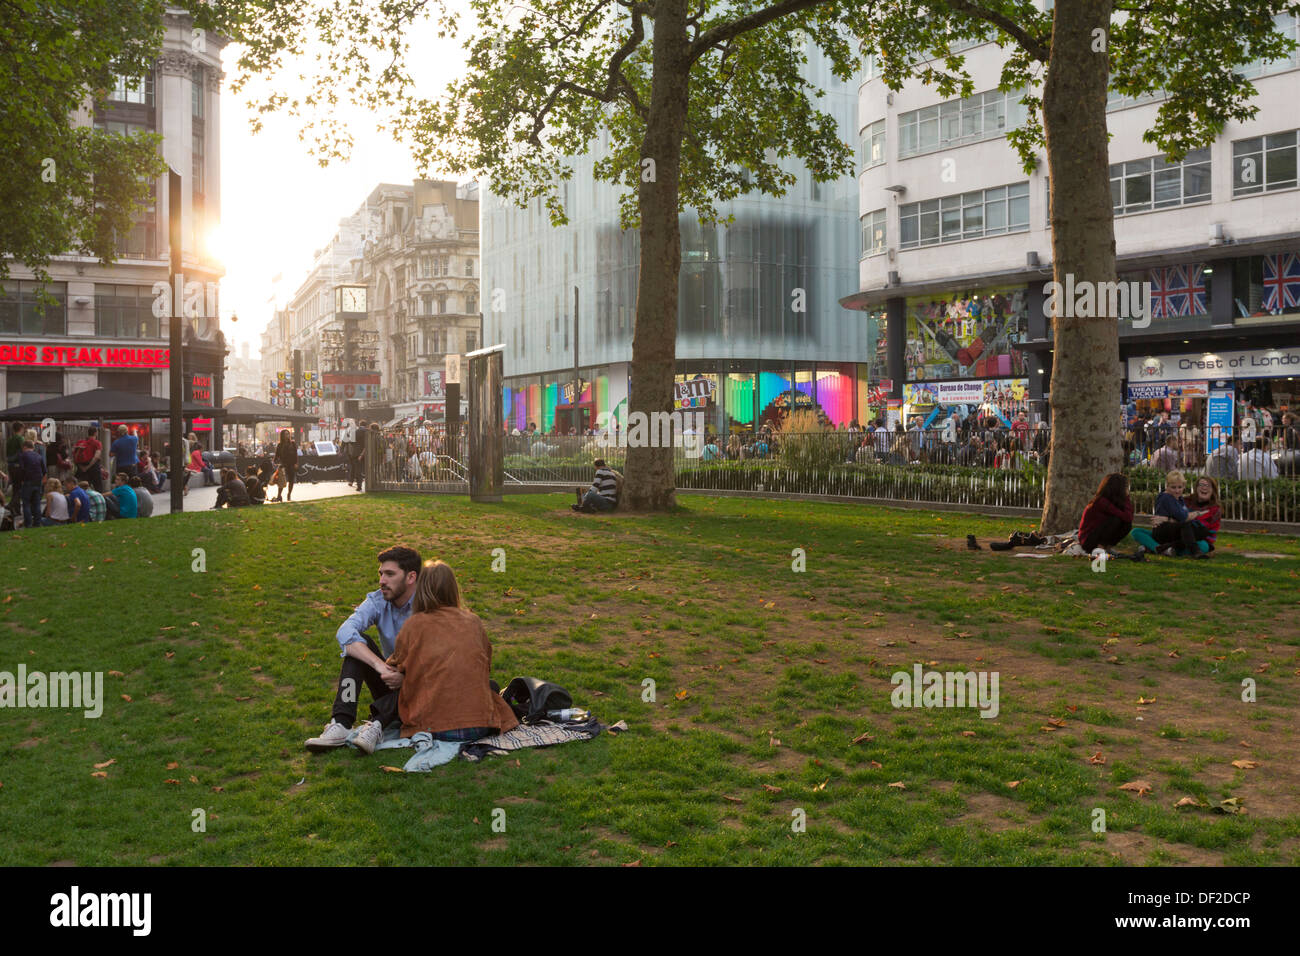 Leicester Square - Westminster - London - Stock Image